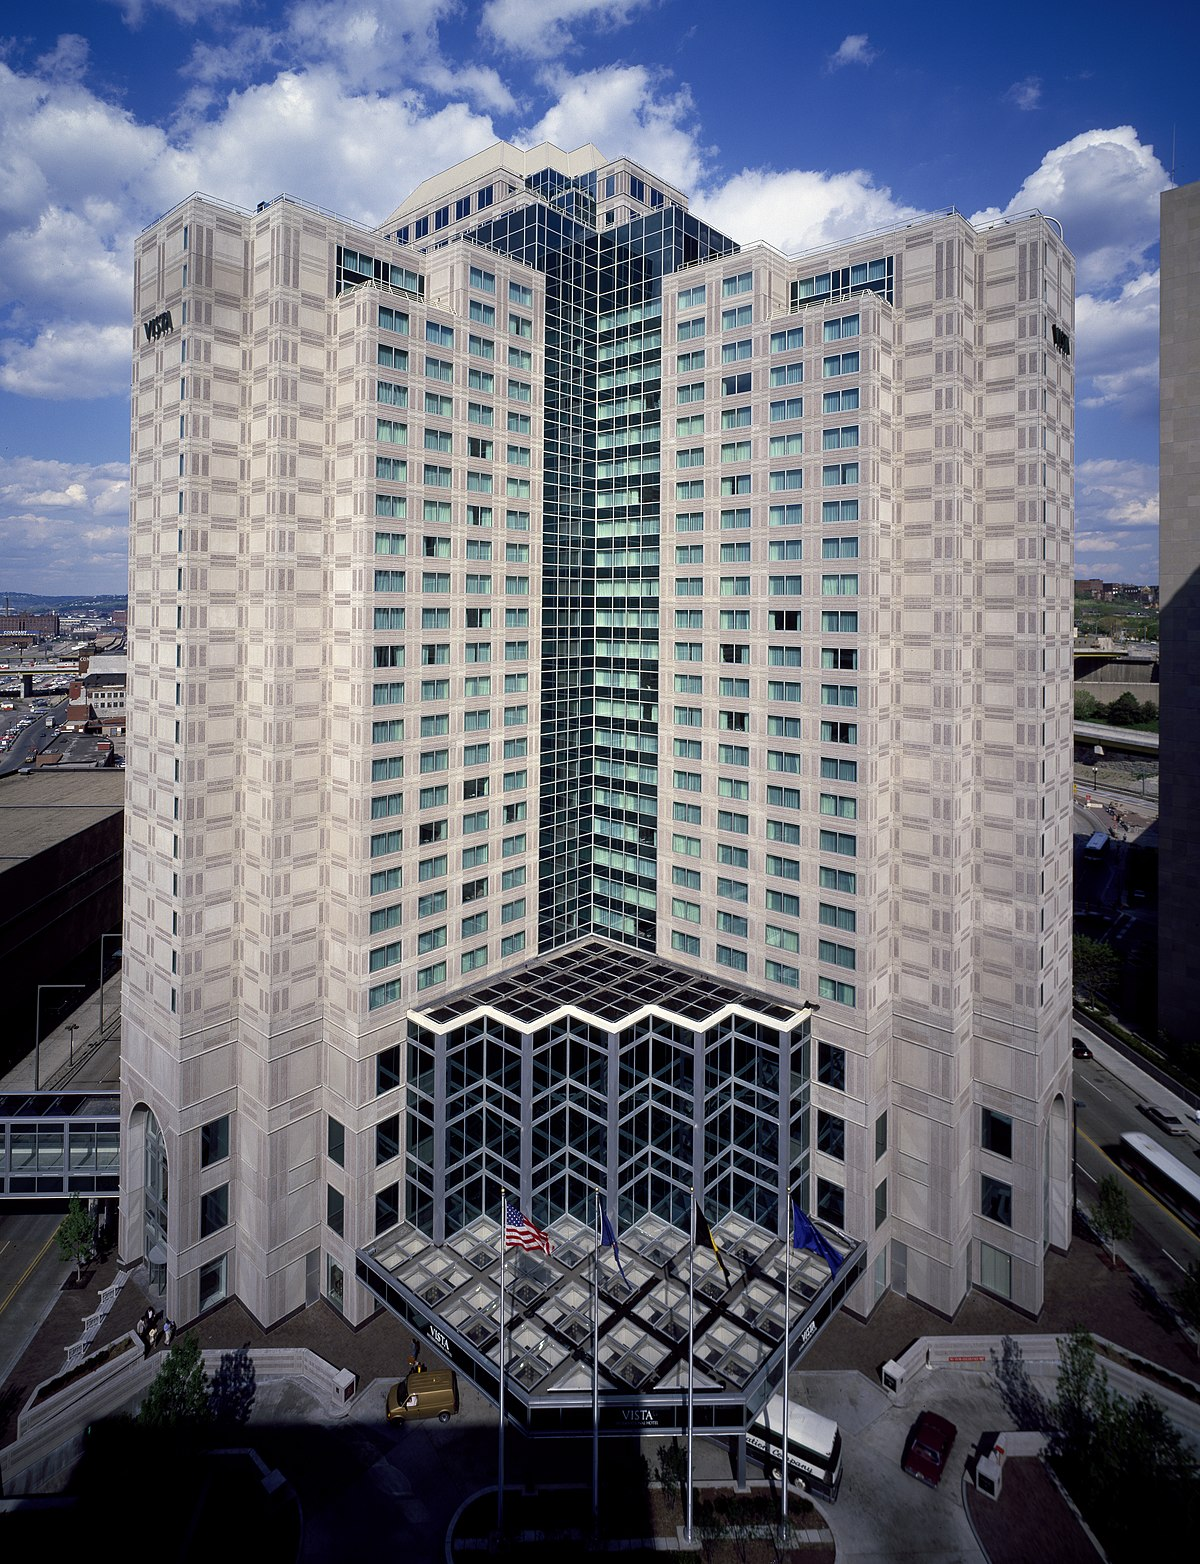 Building Construction Wallpaper Hd Westin Convention Center Pittsburgh Wikipedia